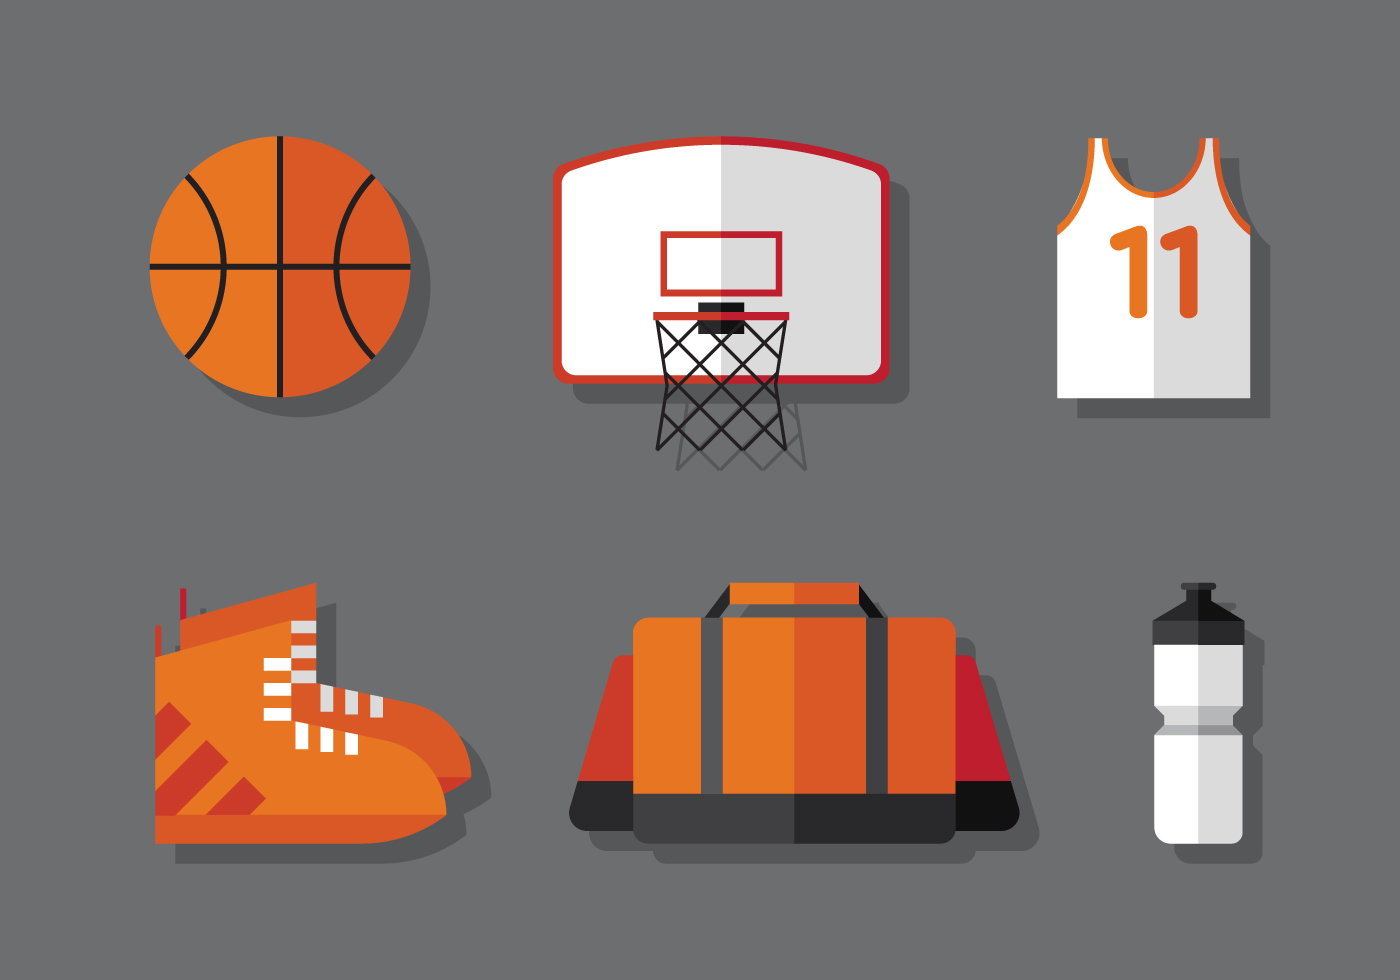 Basketball hoop free vector art 611 free downloads for Free basketball vector